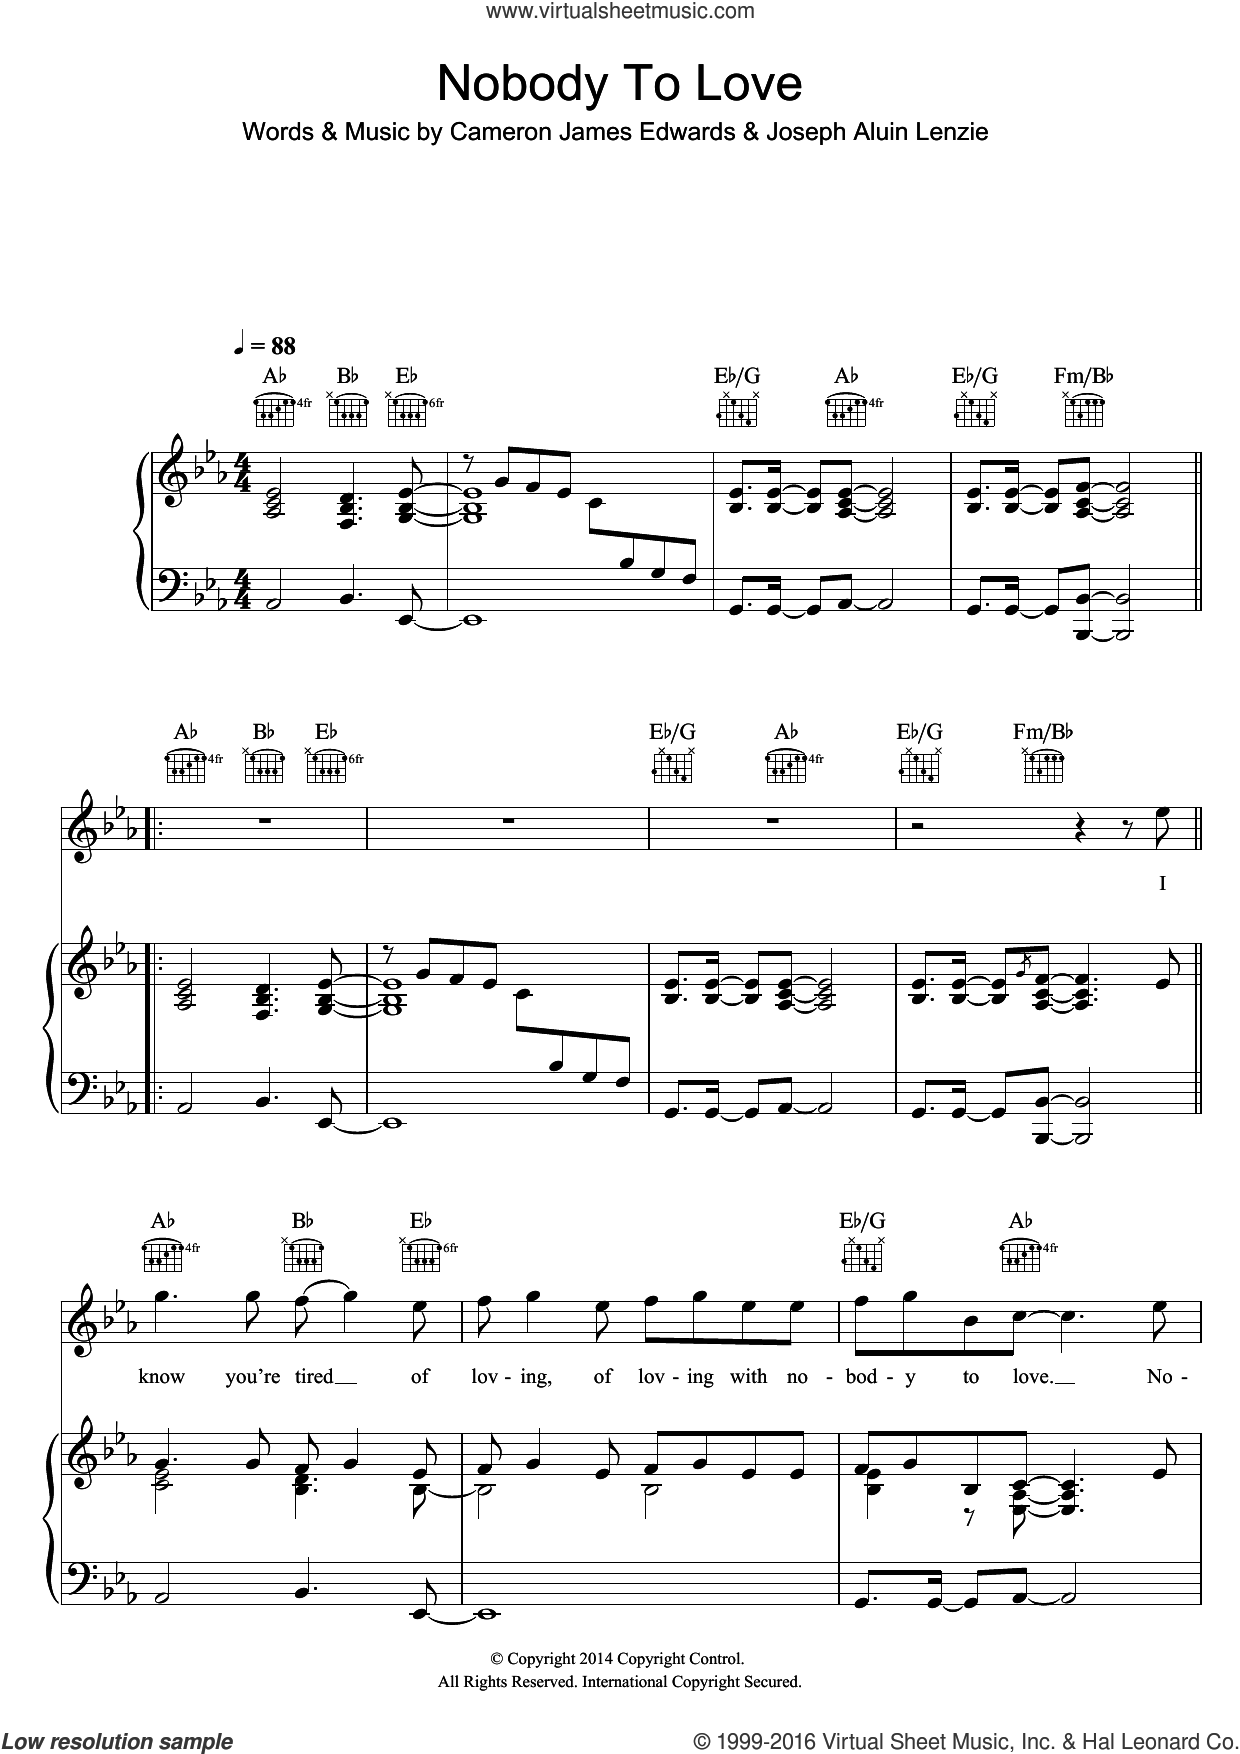 Nobody To Love sheet music for voice, piano or guitar by Sigma, Cameron James Edwards and Joseph Aluin Lenzie, intermediate skill level